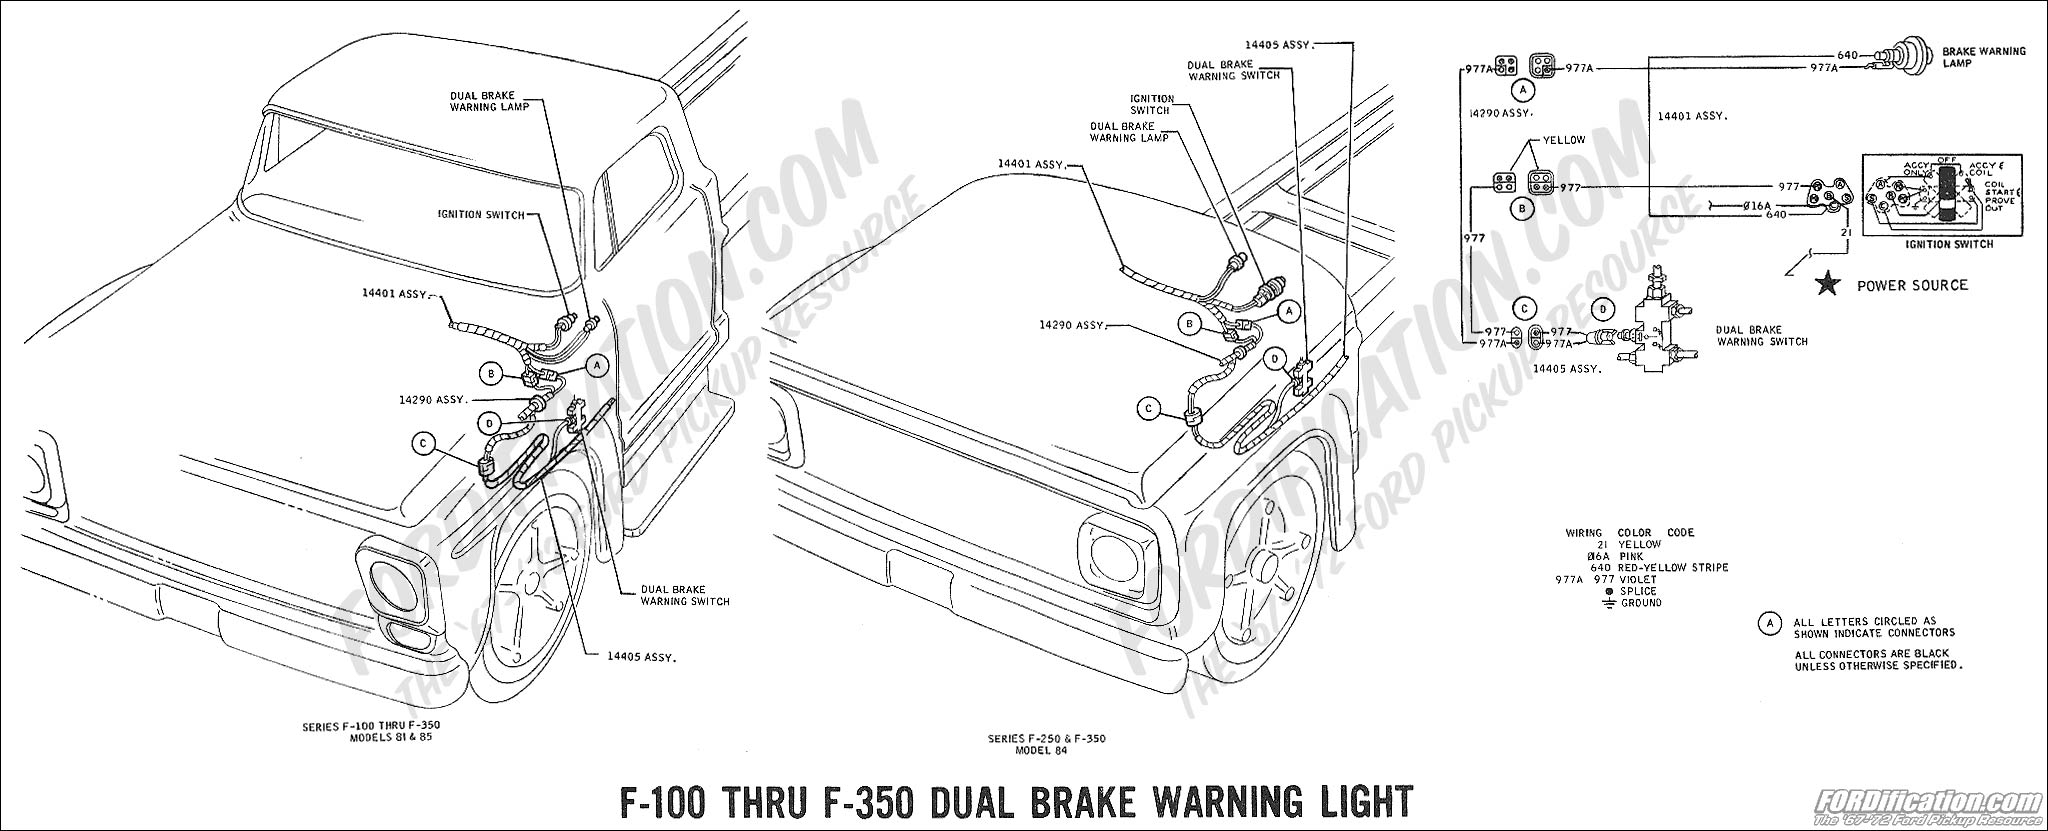 wiring_69brakewarninglight ford truck technical drawings and schematics section h wiring Ford Super Duty Wiring Diagram at panicattacktreatment.co